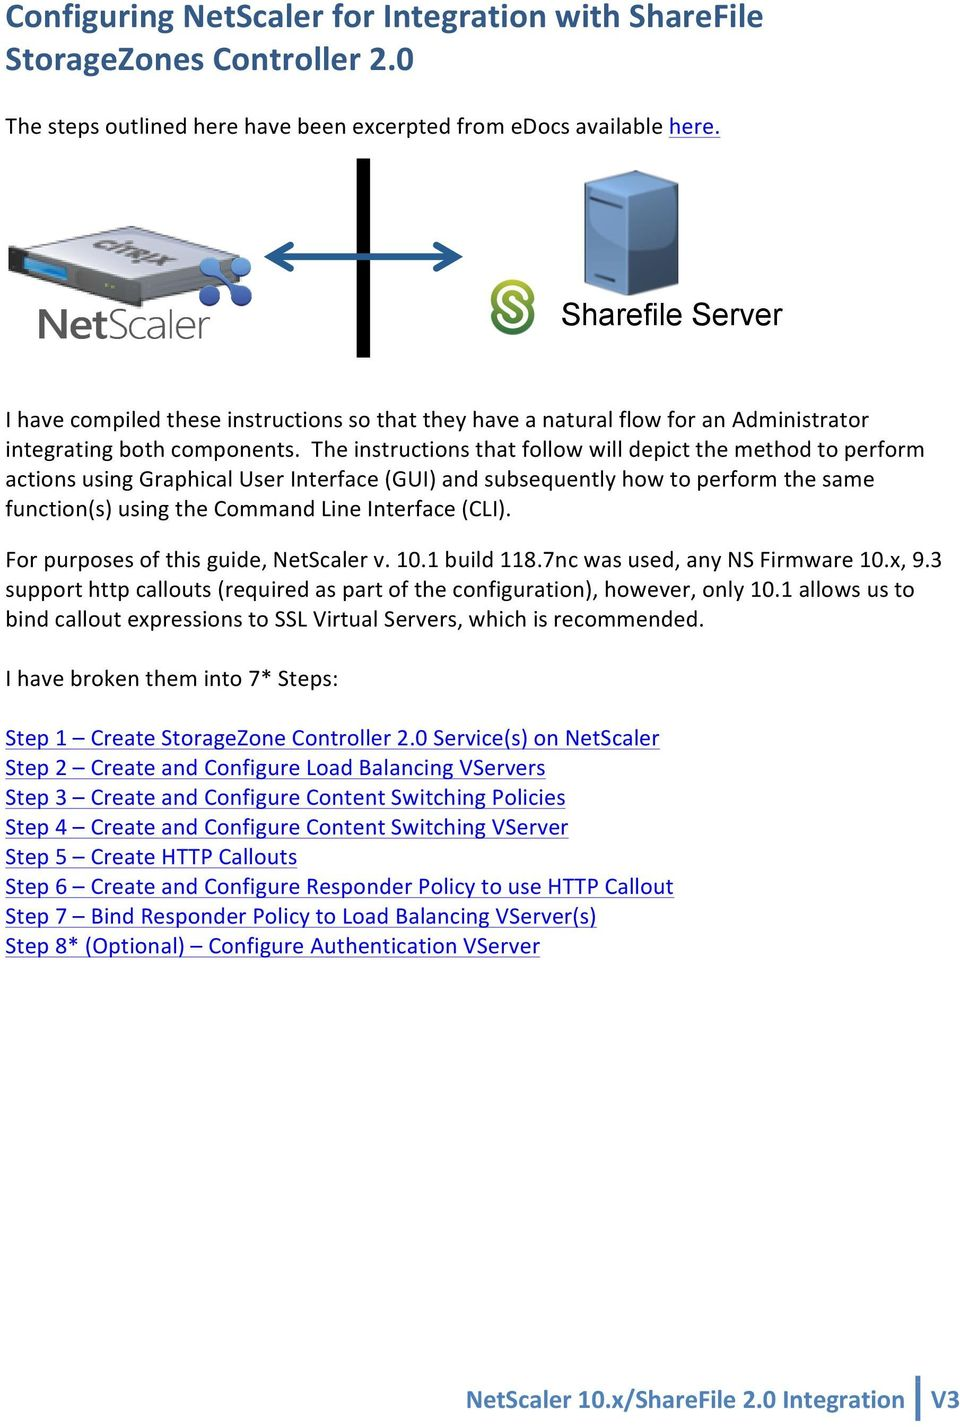 Configuring NetScaler for Integration with ShareFile